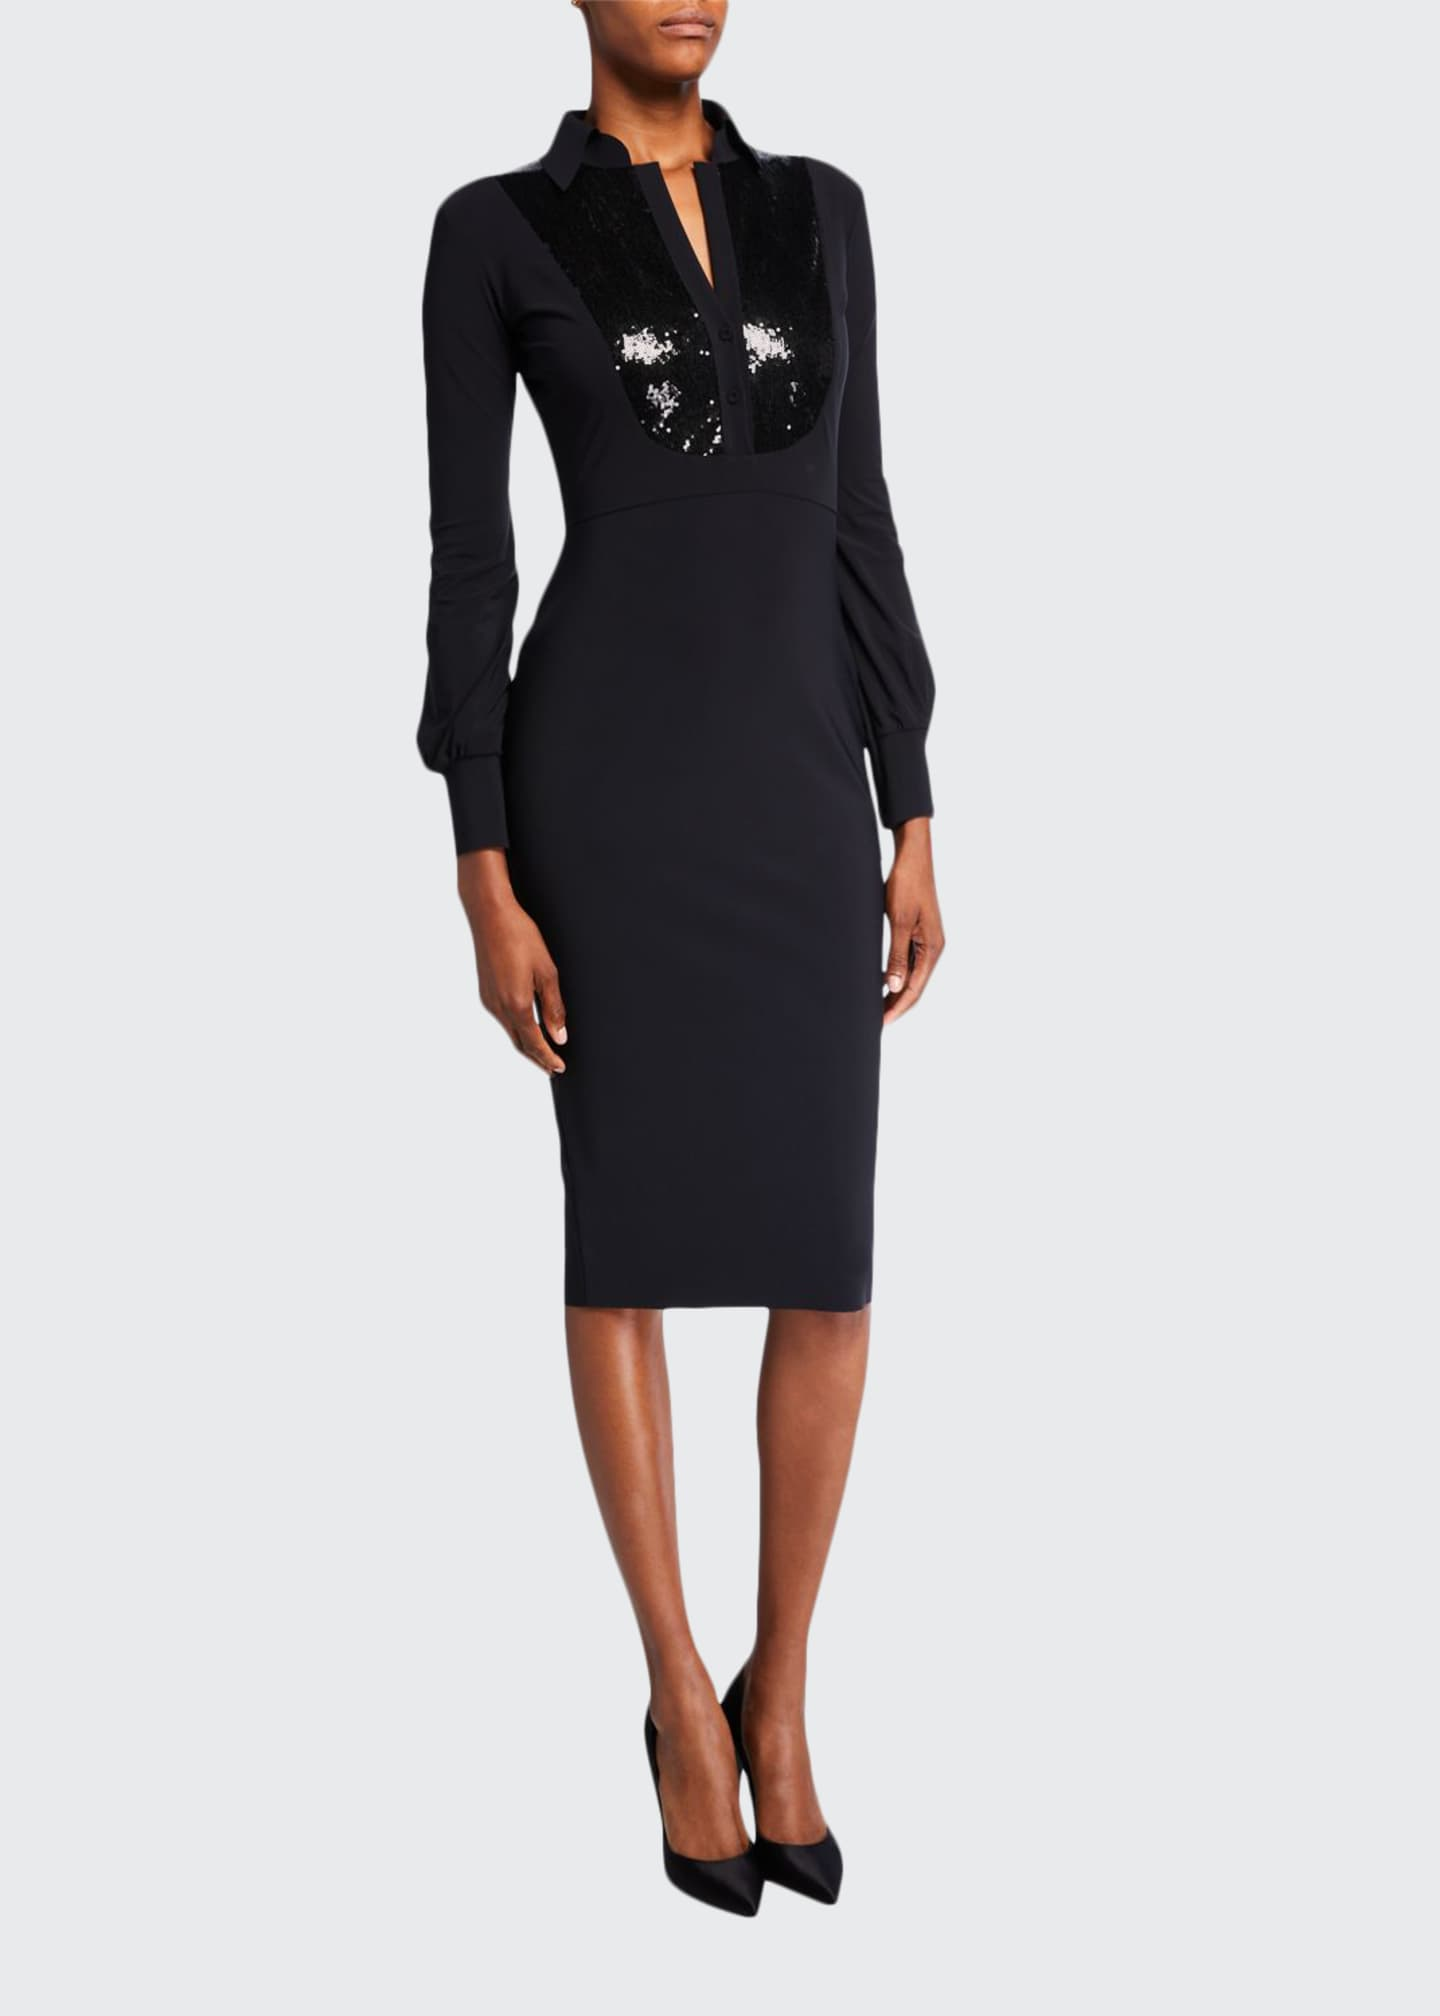 Chiara Boni La Petite Robe Sequin-Bib Long-Sleeve Tuxedo